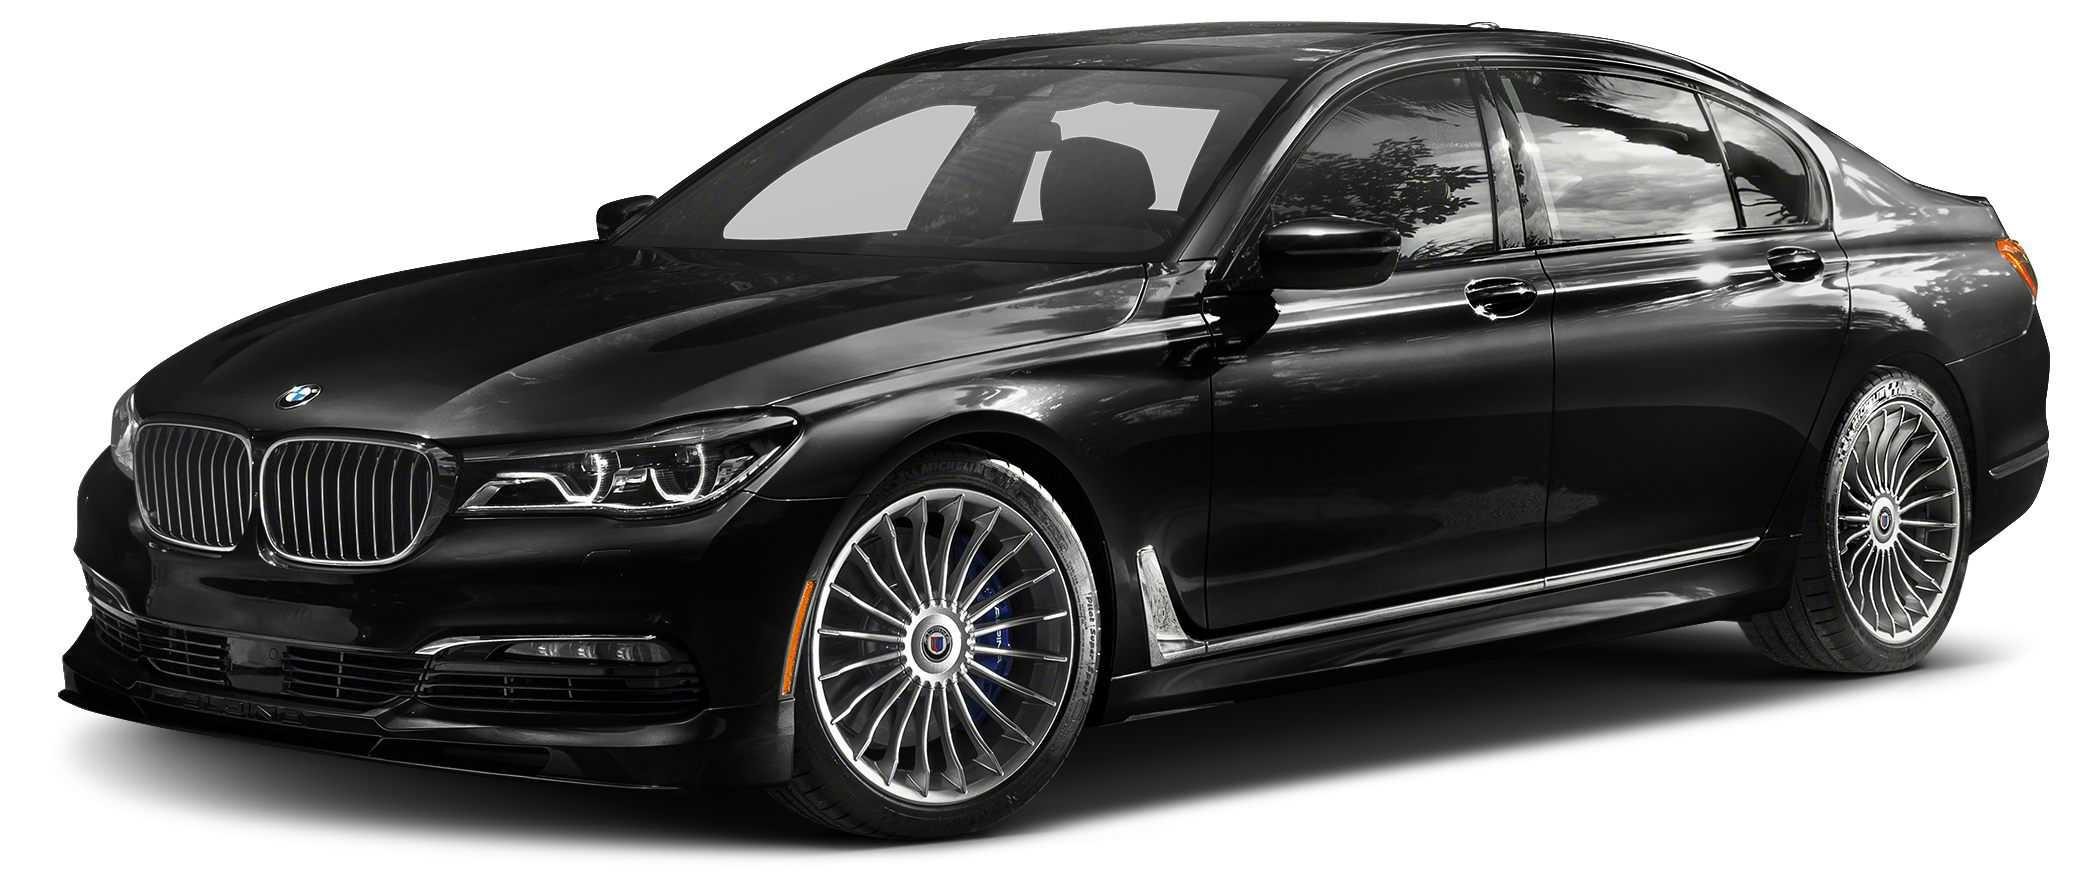 BMW ALPINA B For Sale In Miami FL WBAFCHG - Bmw alpina price range